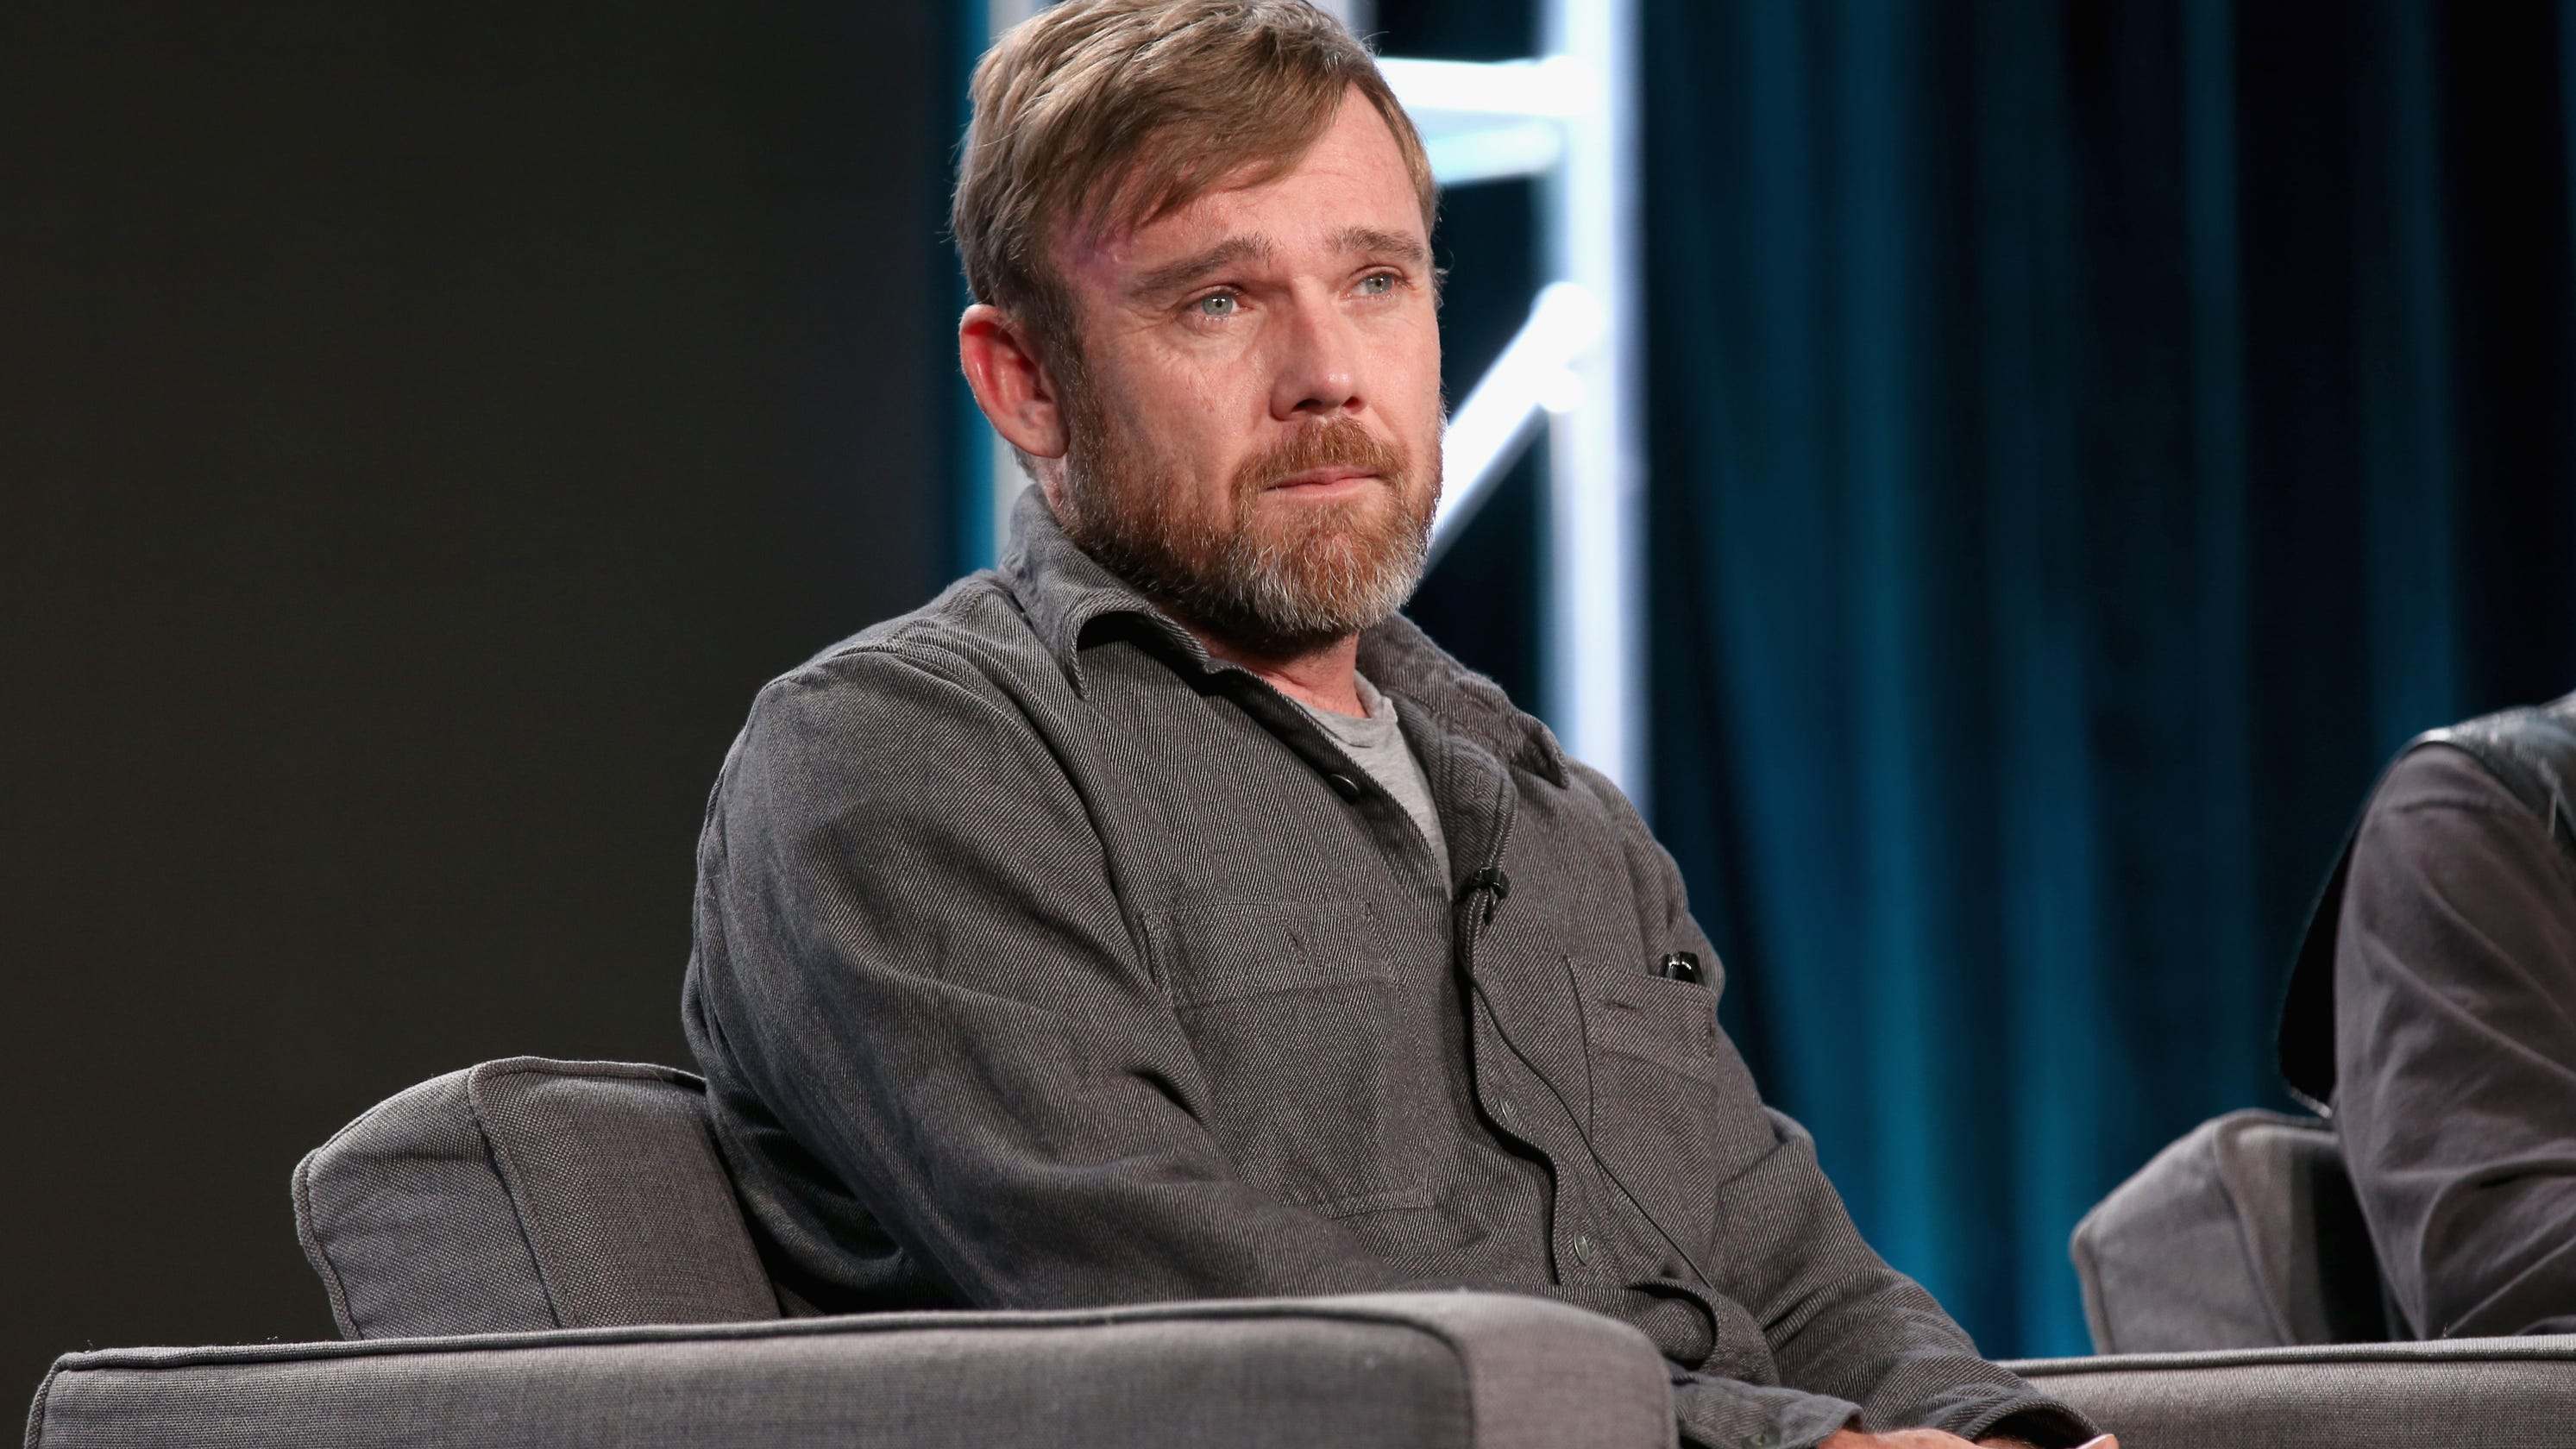 'You're gonna listen to these people?': Ricky Schroder films himself confronting Costco employee over mask policy